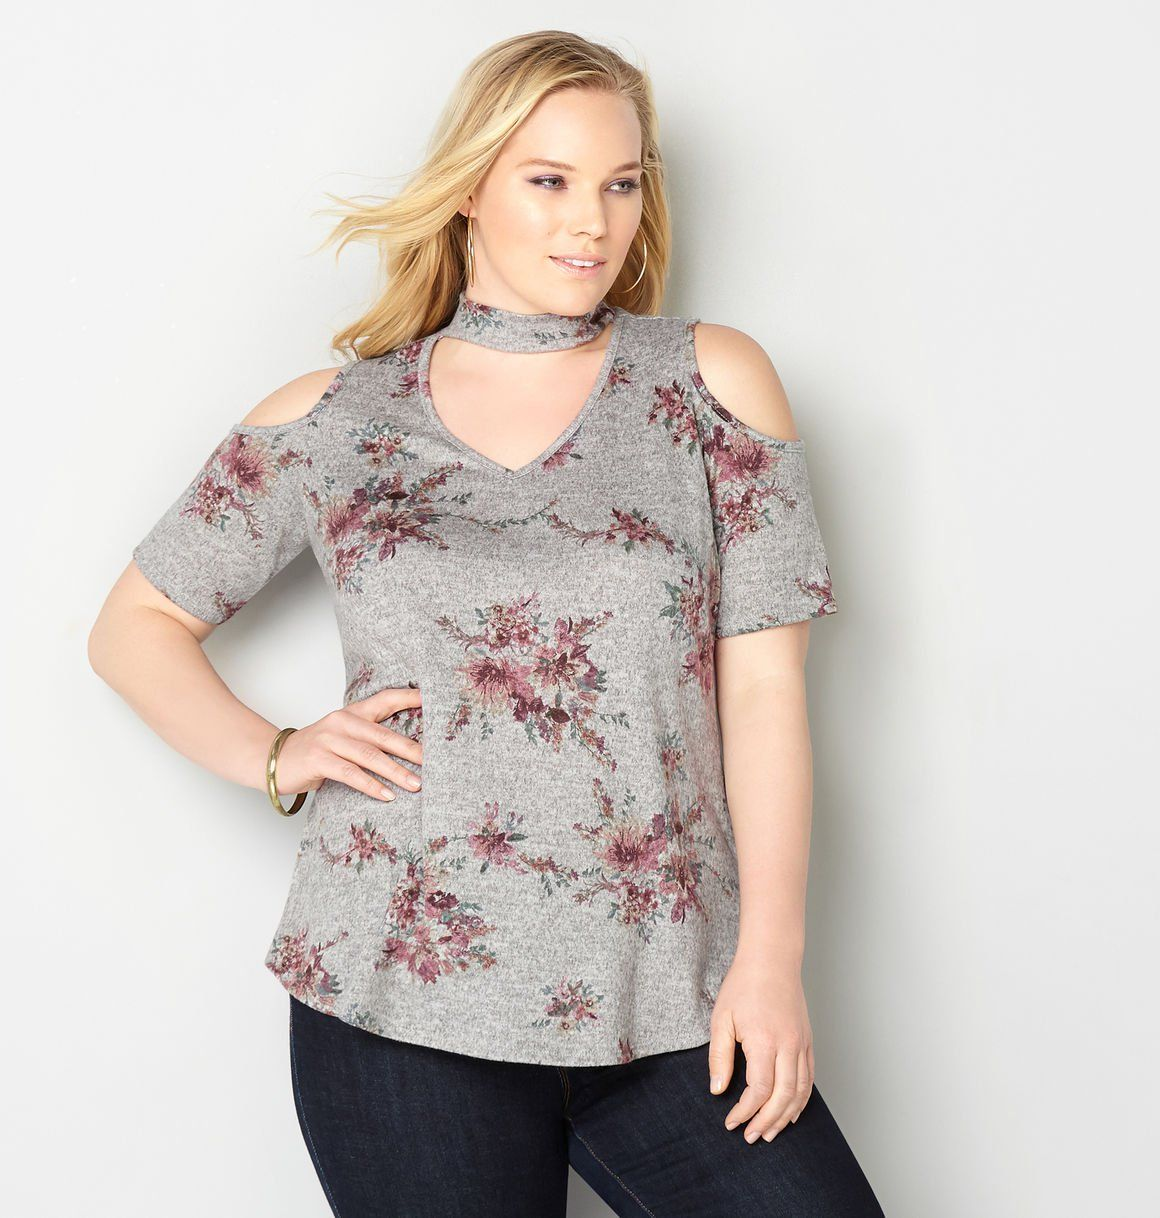 c6d30a67409 Shop pretty sexy tops for summer like our Floral Cold Shoulder Choker  Tunic, available in plus sizes 14-32 at avenue.com. Avenue Store